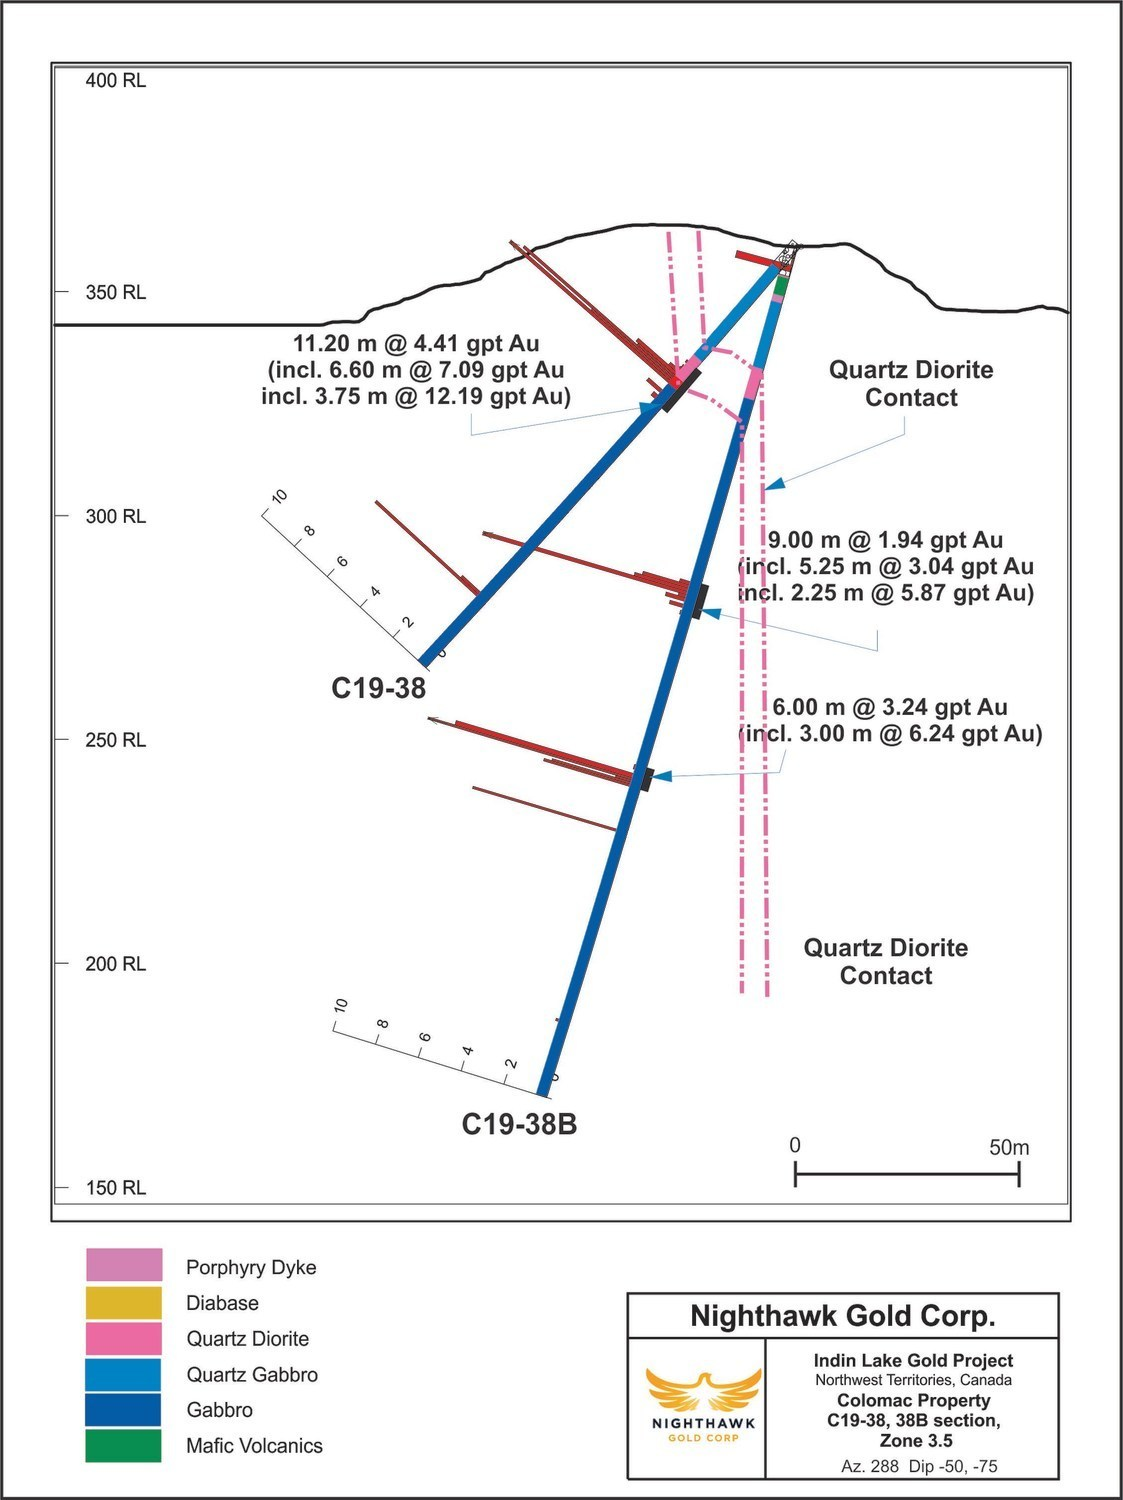 Figure 4. Cross Section – Zone 3.5 – Drillholes C19-38 and C19-38B (CNW Group/Nighthawk Gold Corp.)